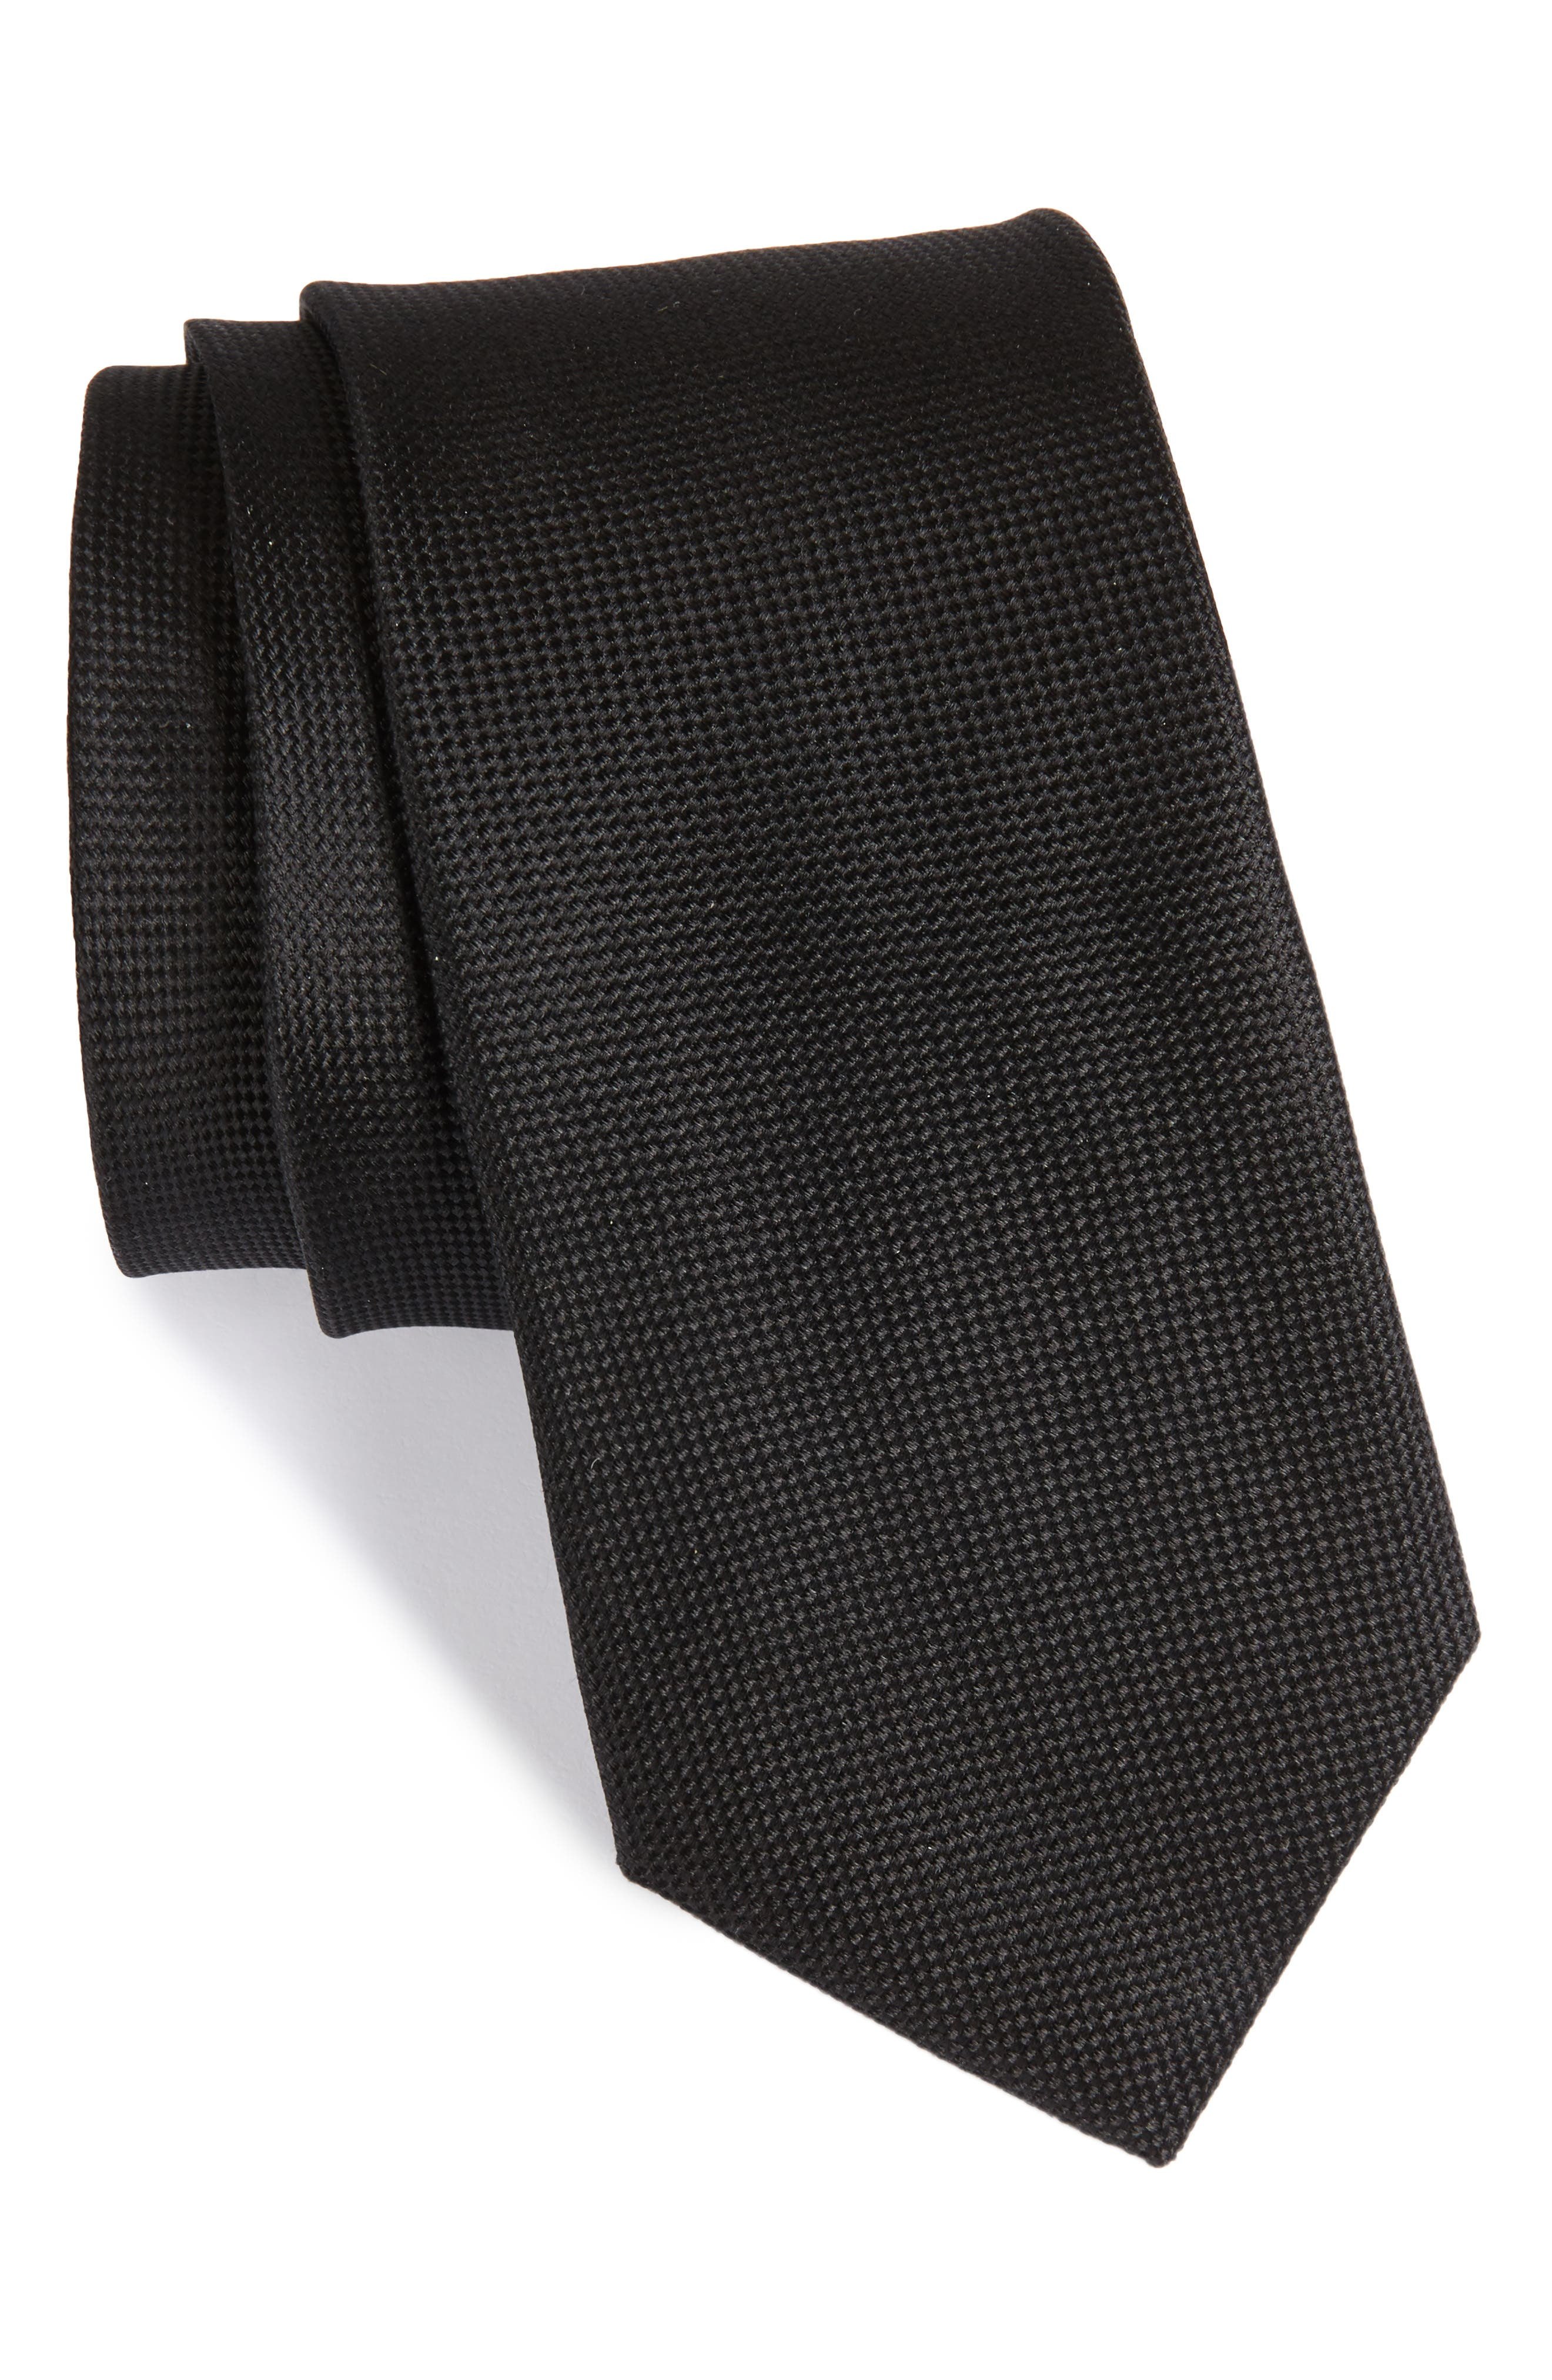 Solid Silk Tie,                             Main thumbnail 1, color,                             001